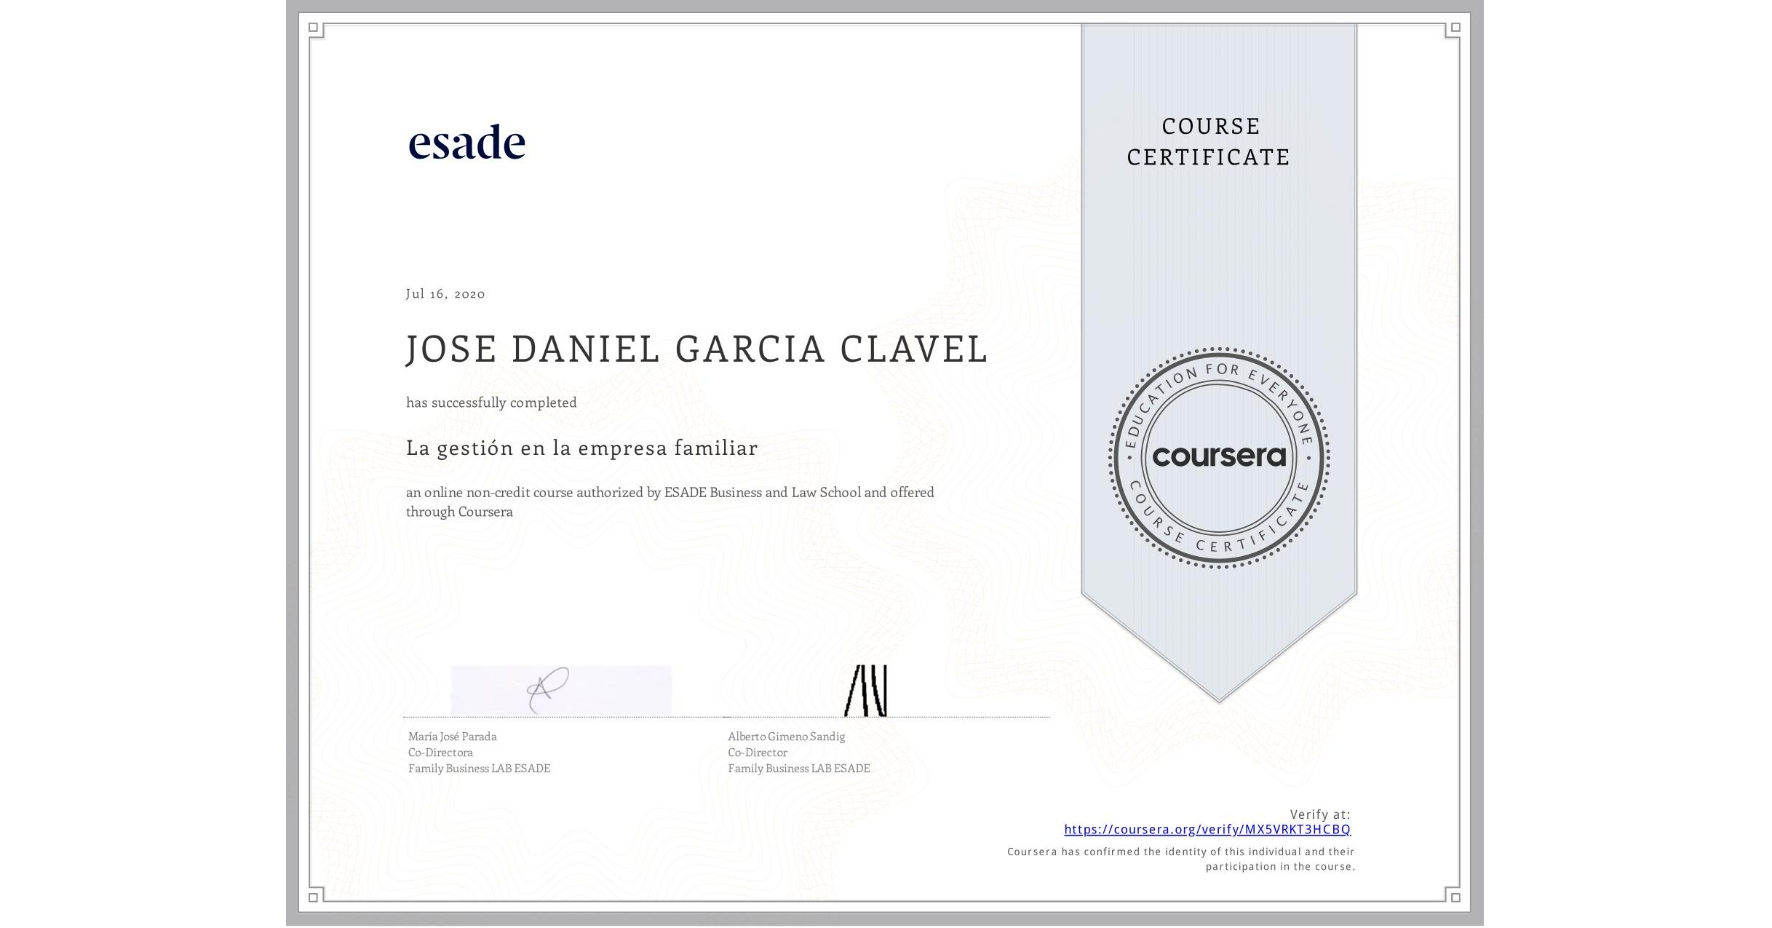 View certificate for JOSE DANIEL GARCIA CLAVEL, La gestión en la empresa familiar, an online non-credit course authorized by ESADE Business and Law School and offered through Coursera